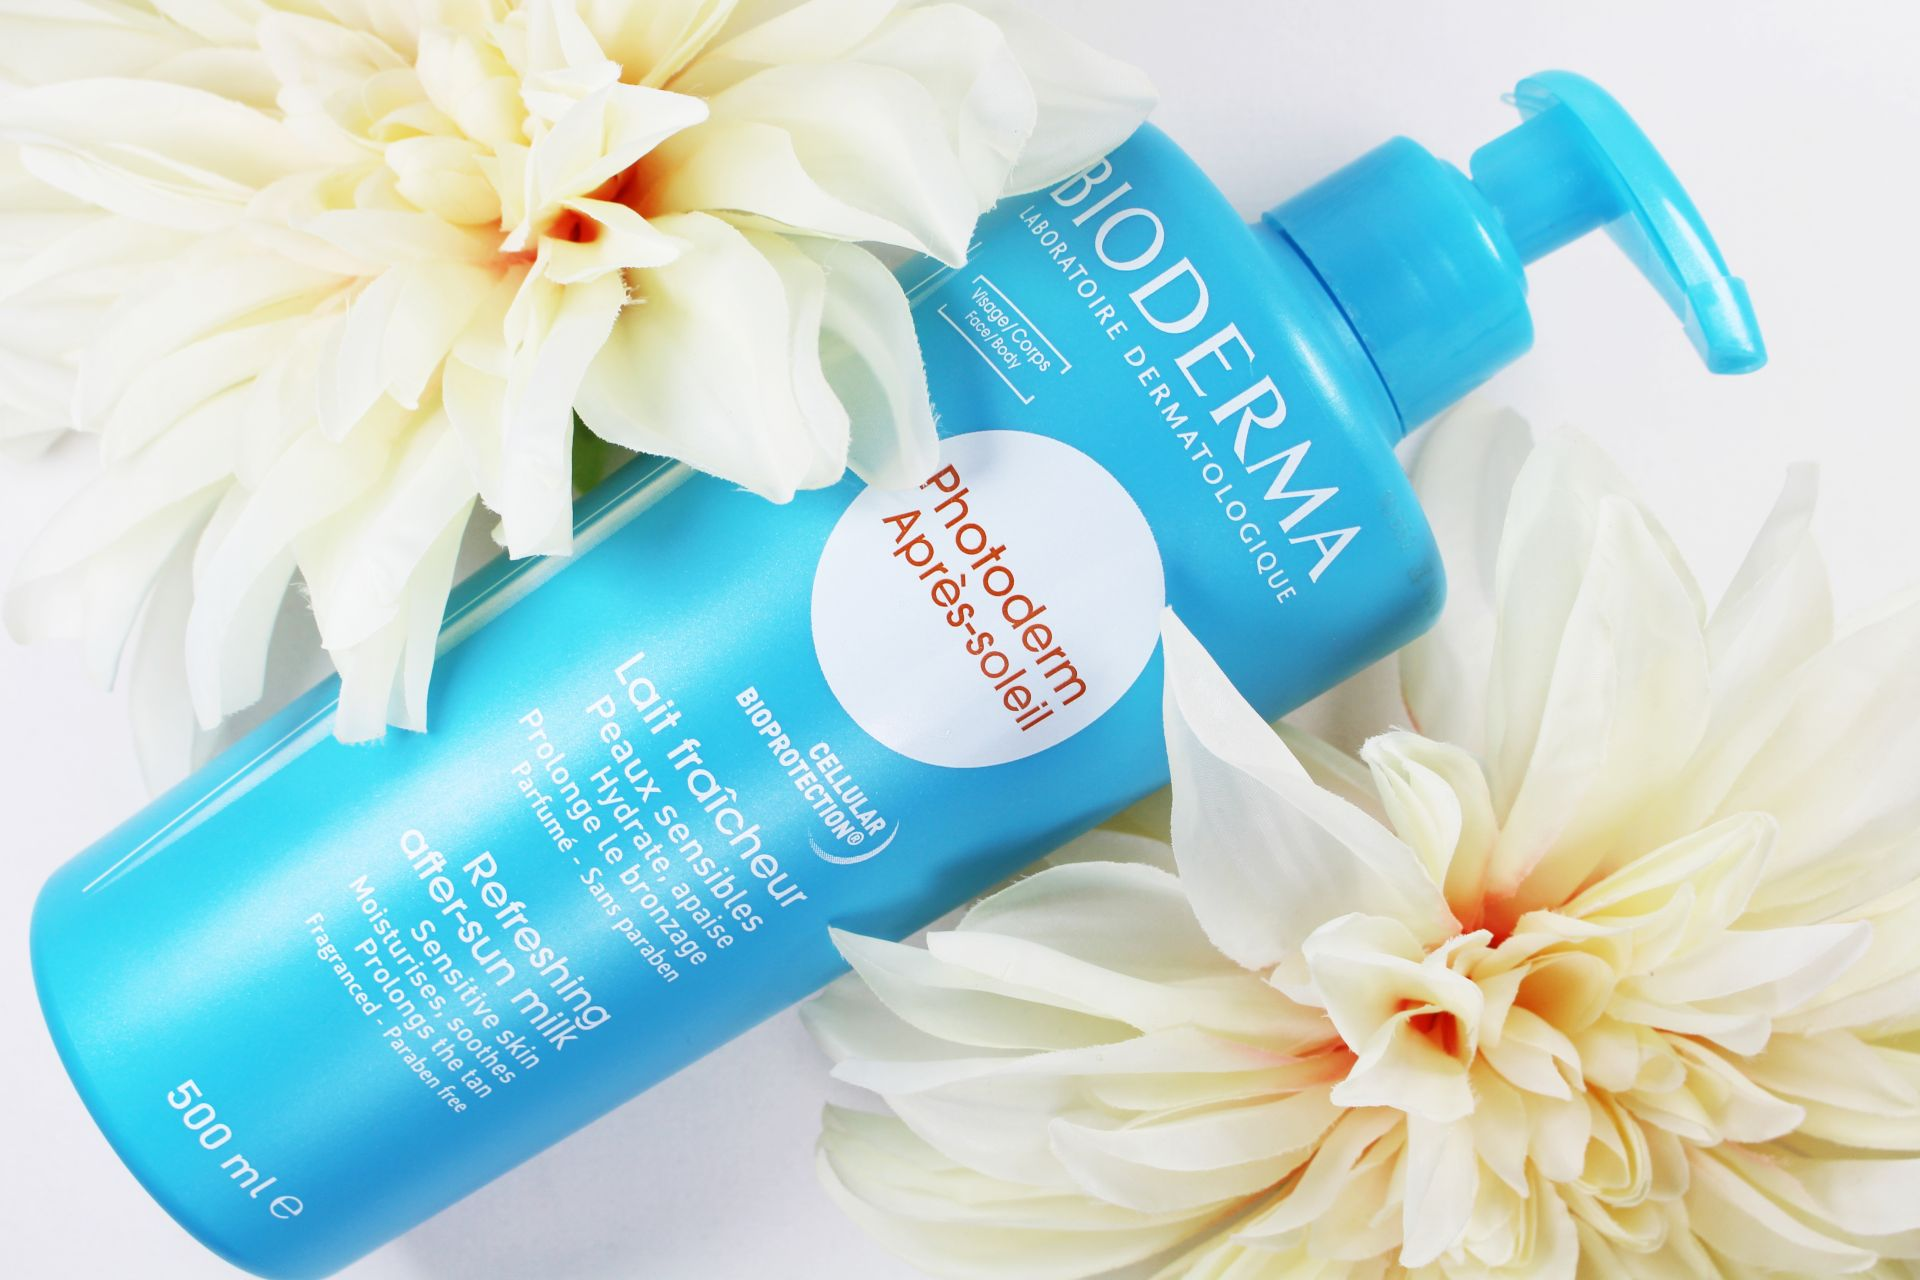 Bioderma Photoderm Apres Soleil, Bioderma After Sun, Apres Lotion Sonnenbrand, Bodylotion, Super Twins Annalena und Magdalena